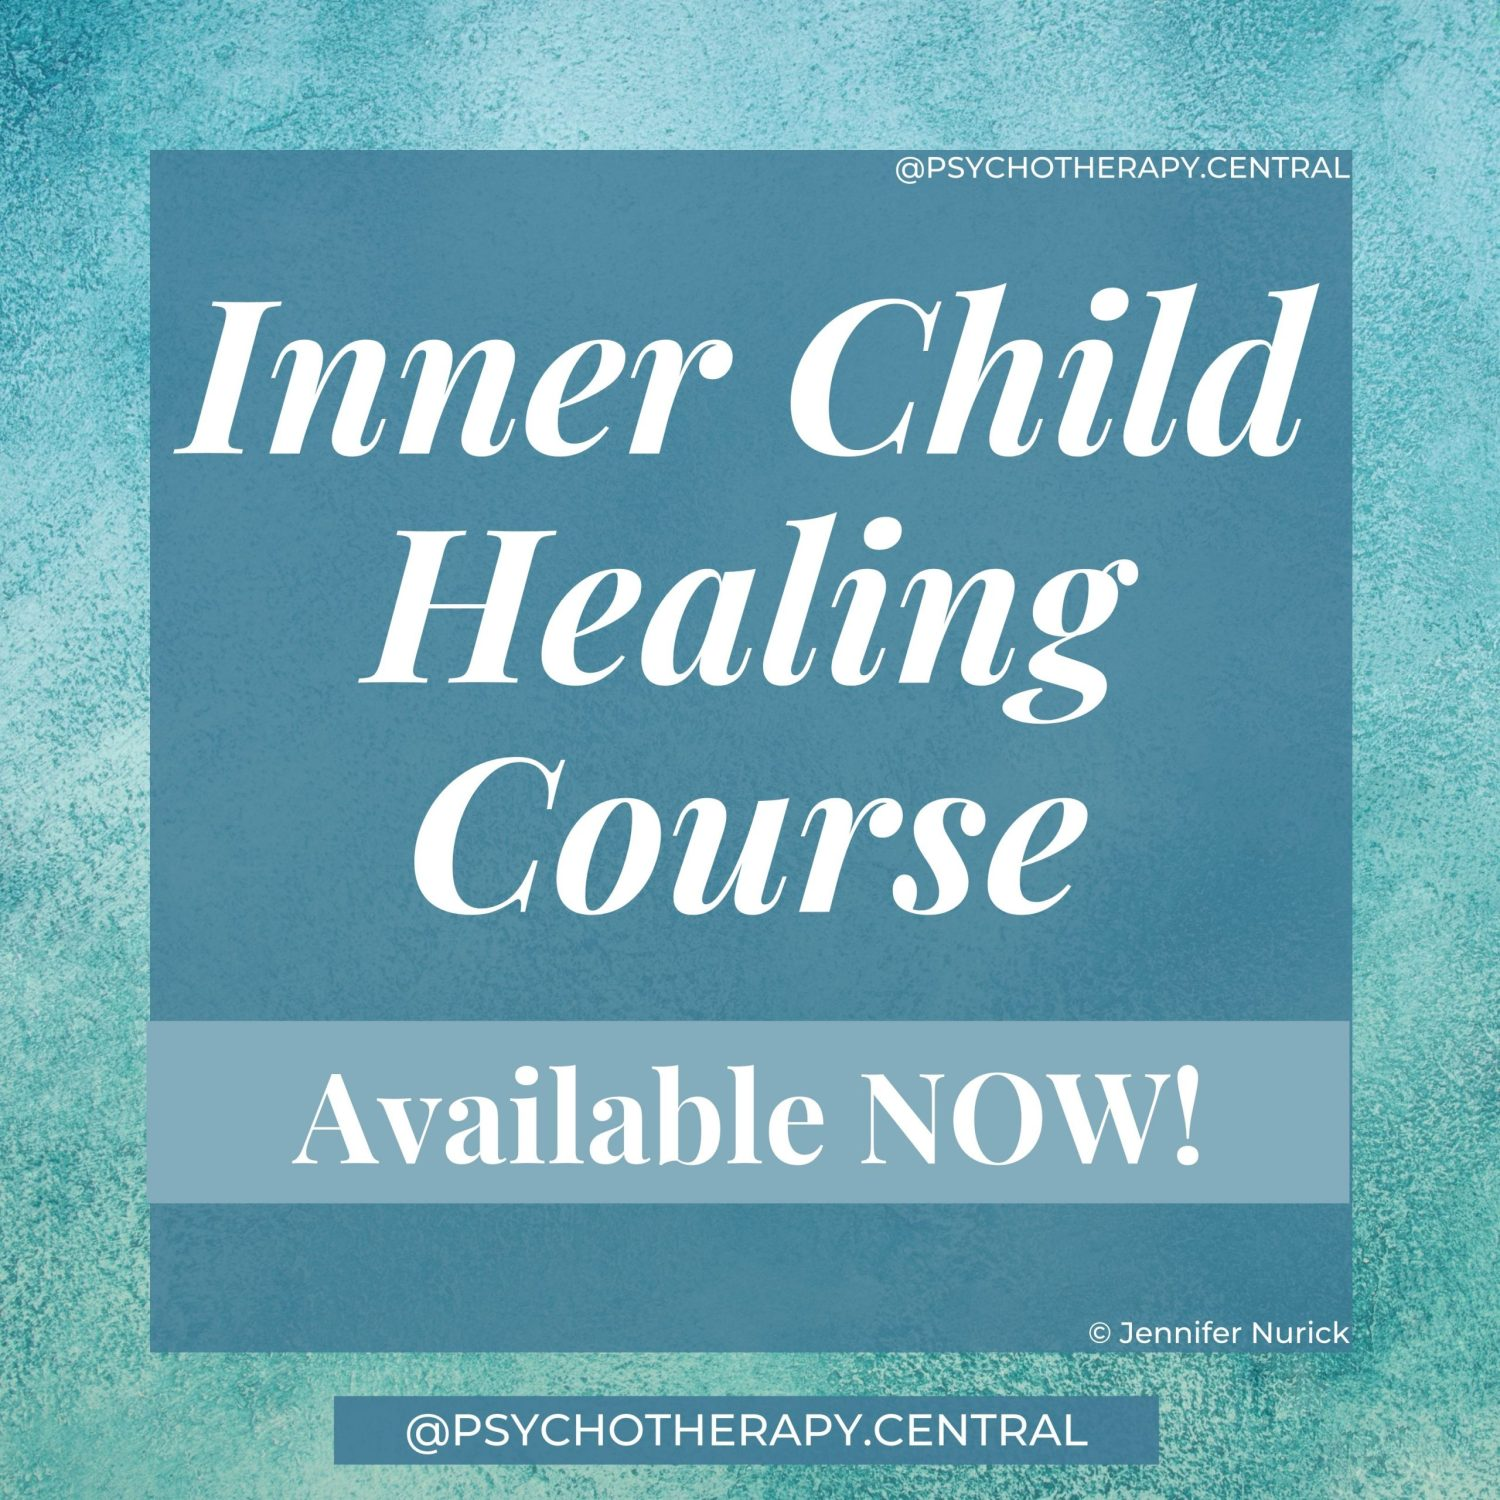 Inner Child Healing Course